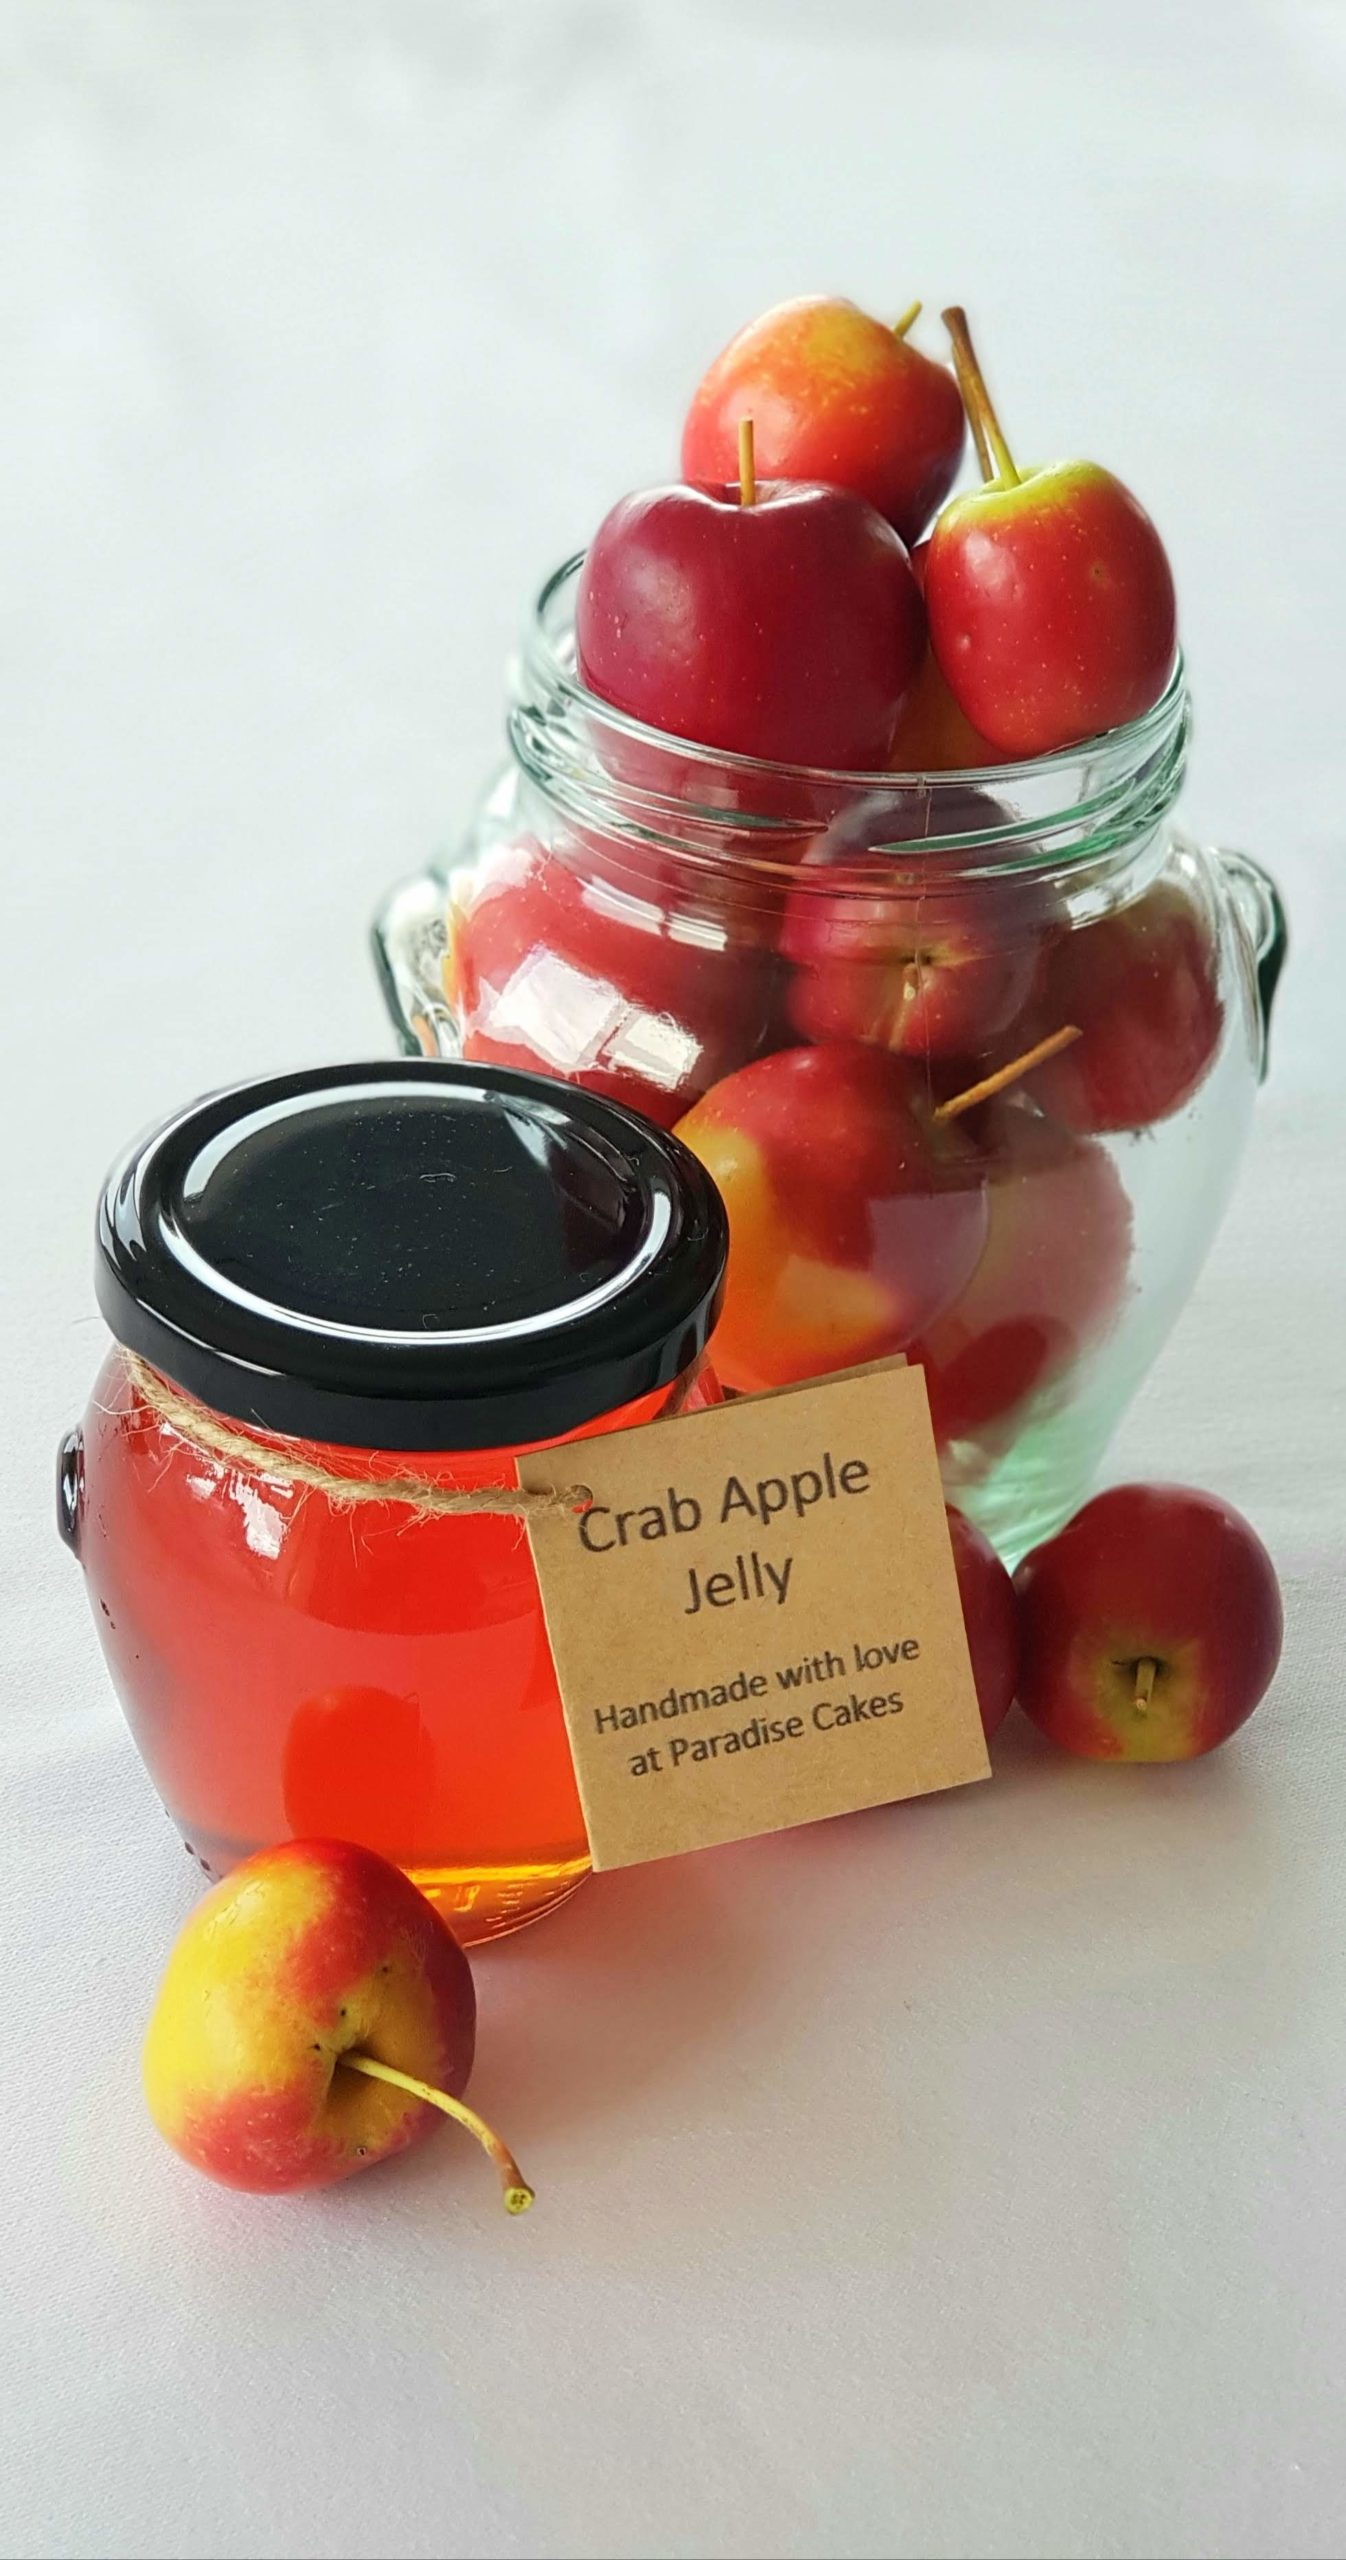 2. Crab apple jelly